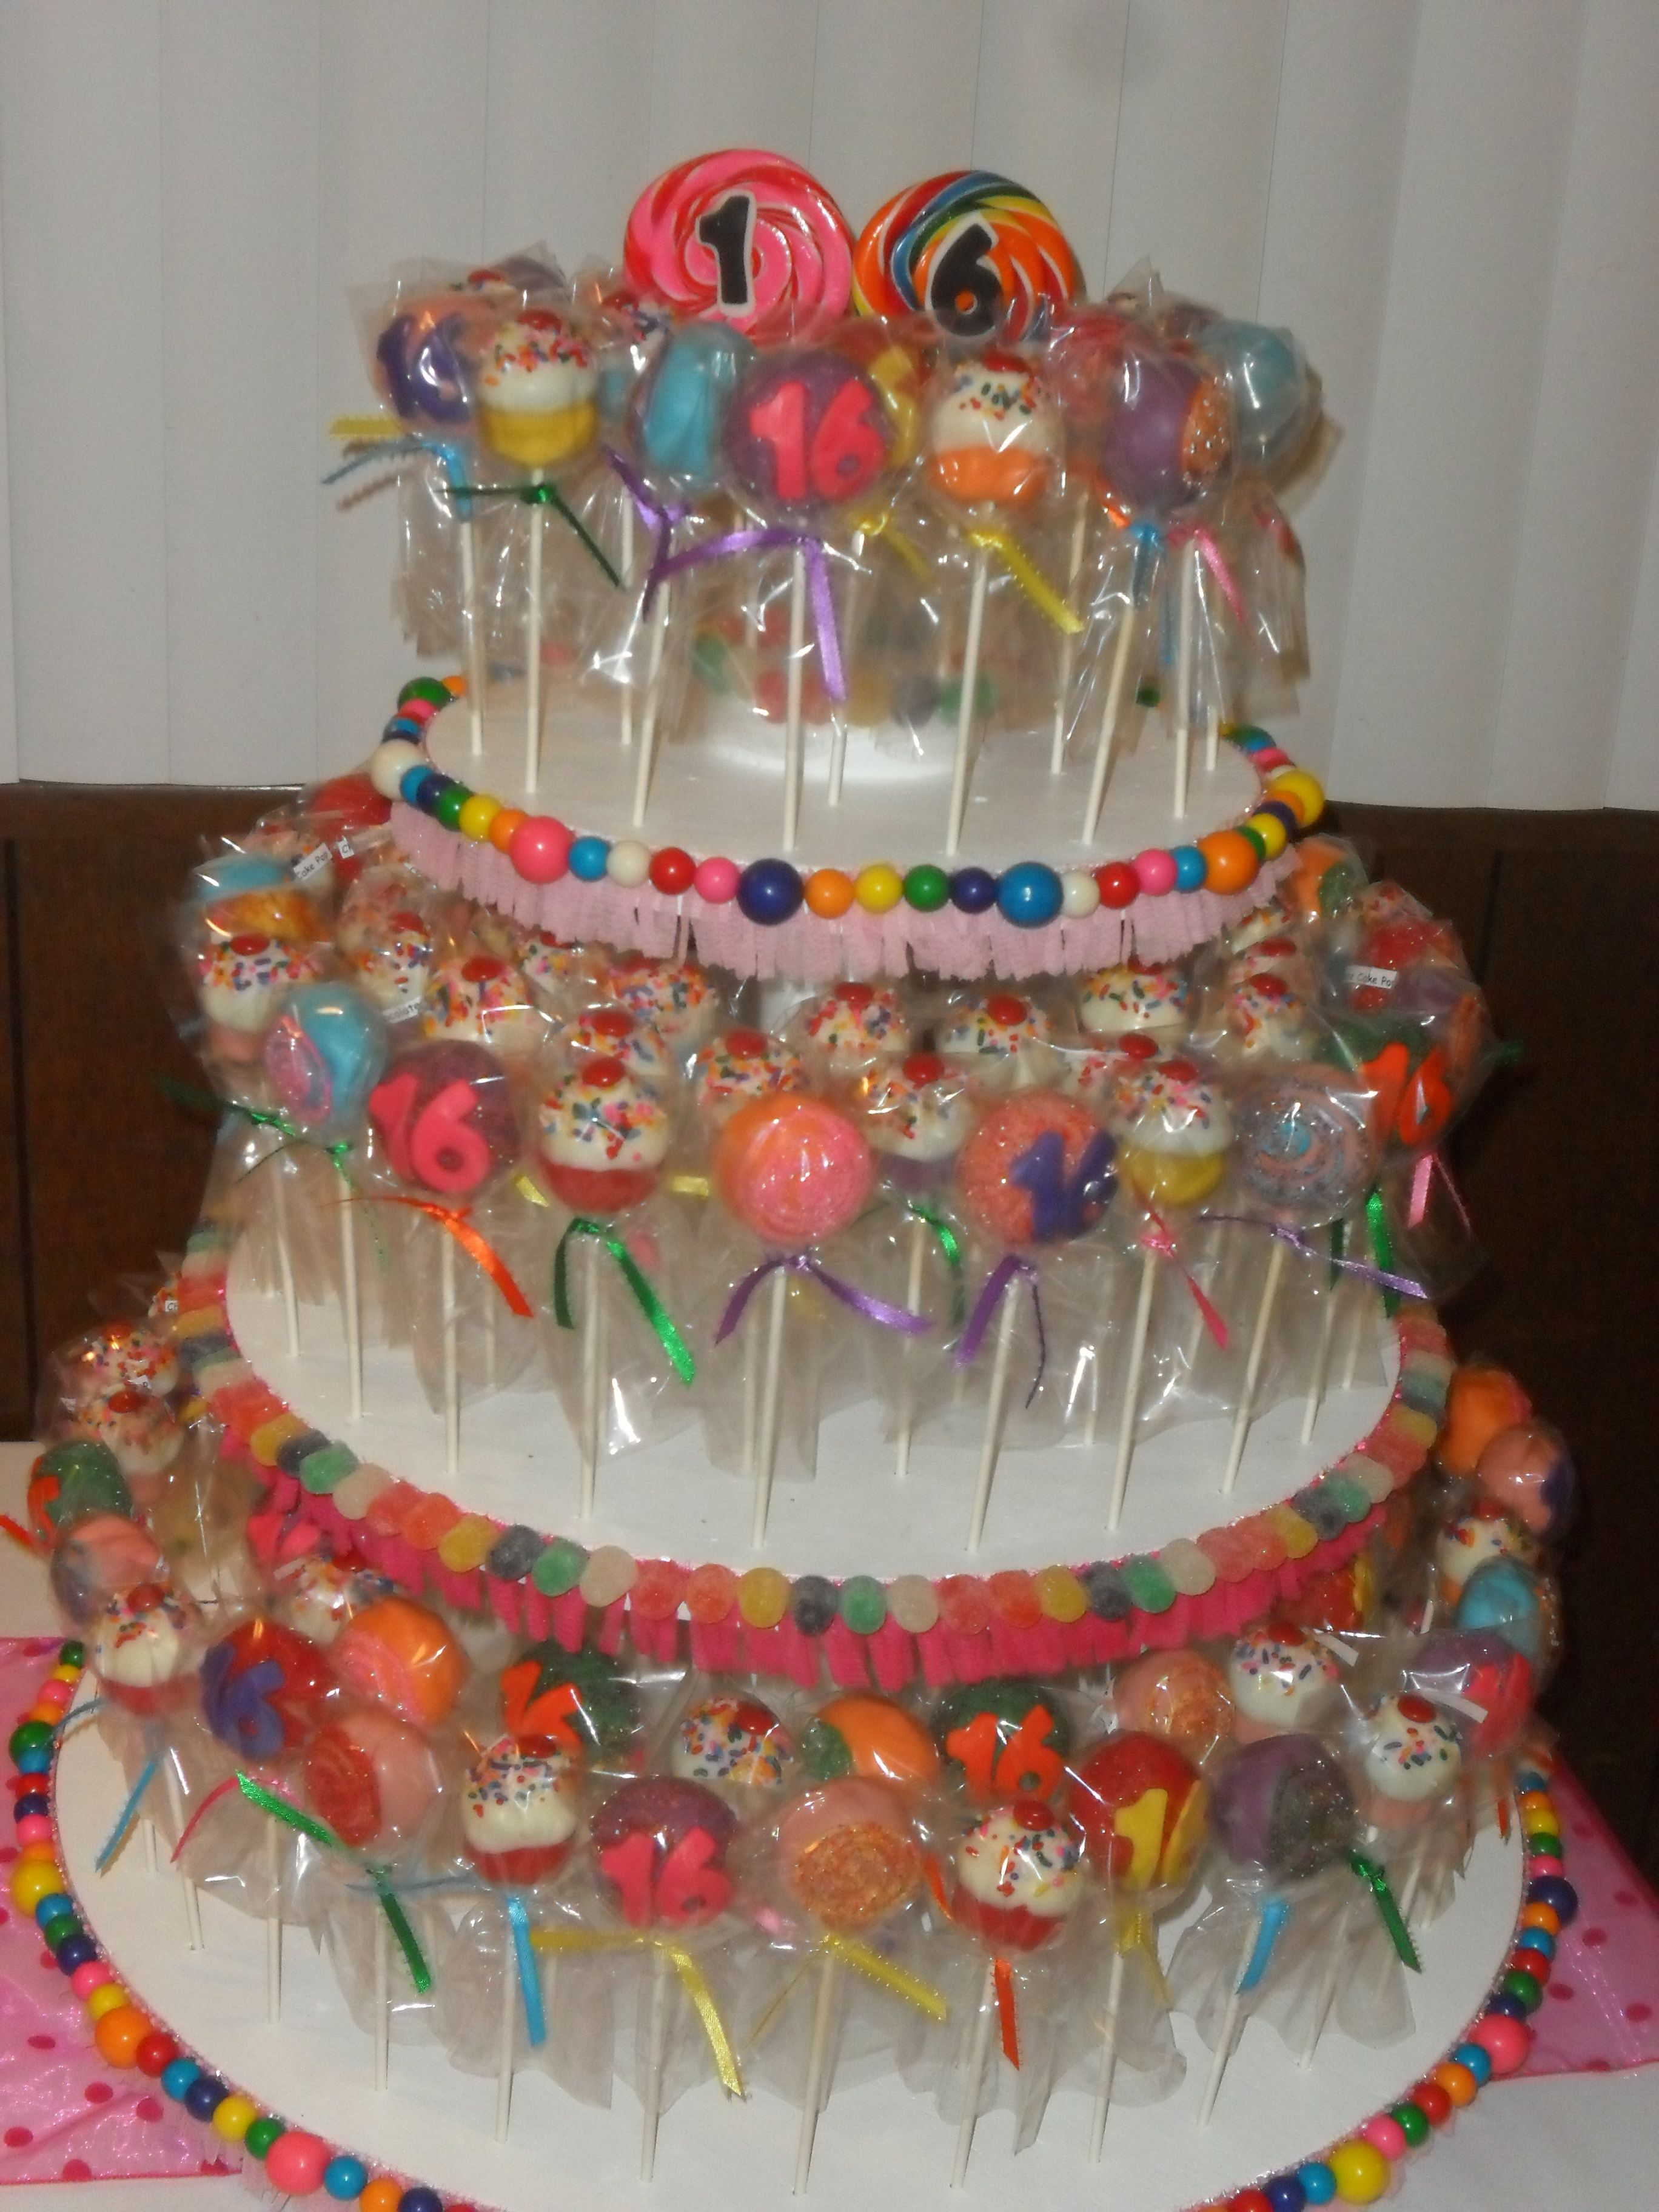 Cake pops Sweet 16 Candy Land theme | My baby's Sweet 16 ...